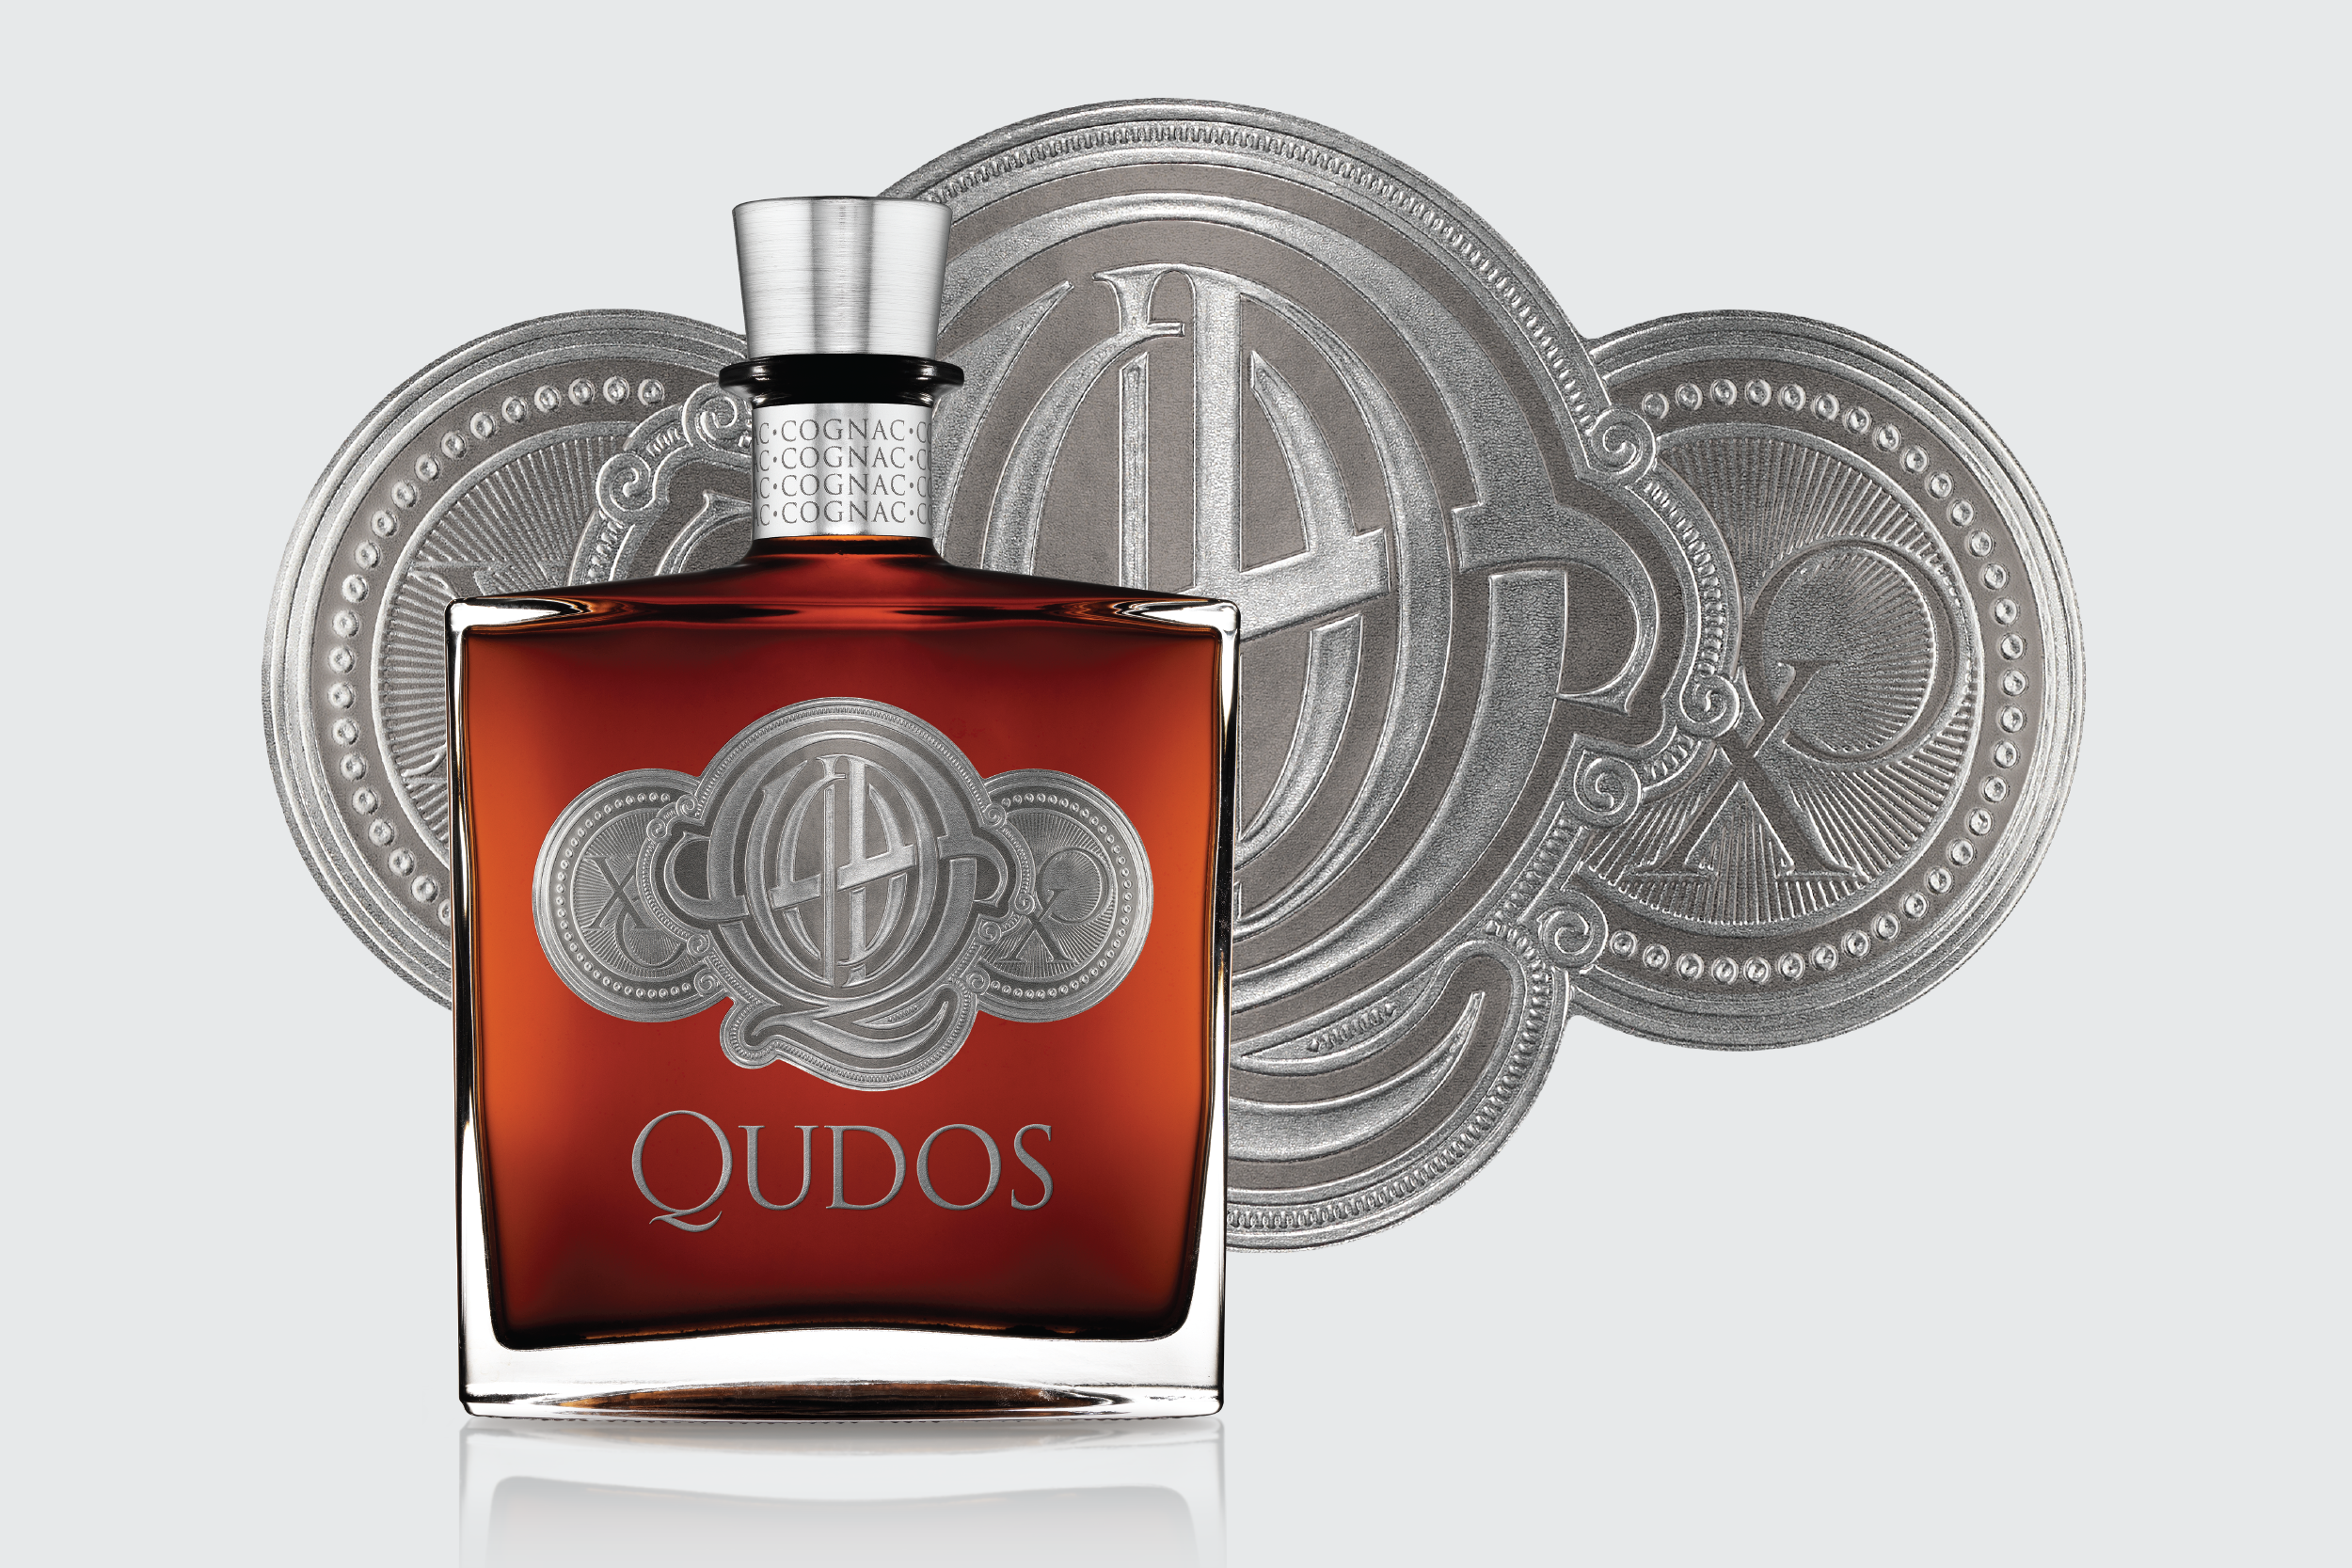 HD_Spicers_Qudos_w_medallion.png